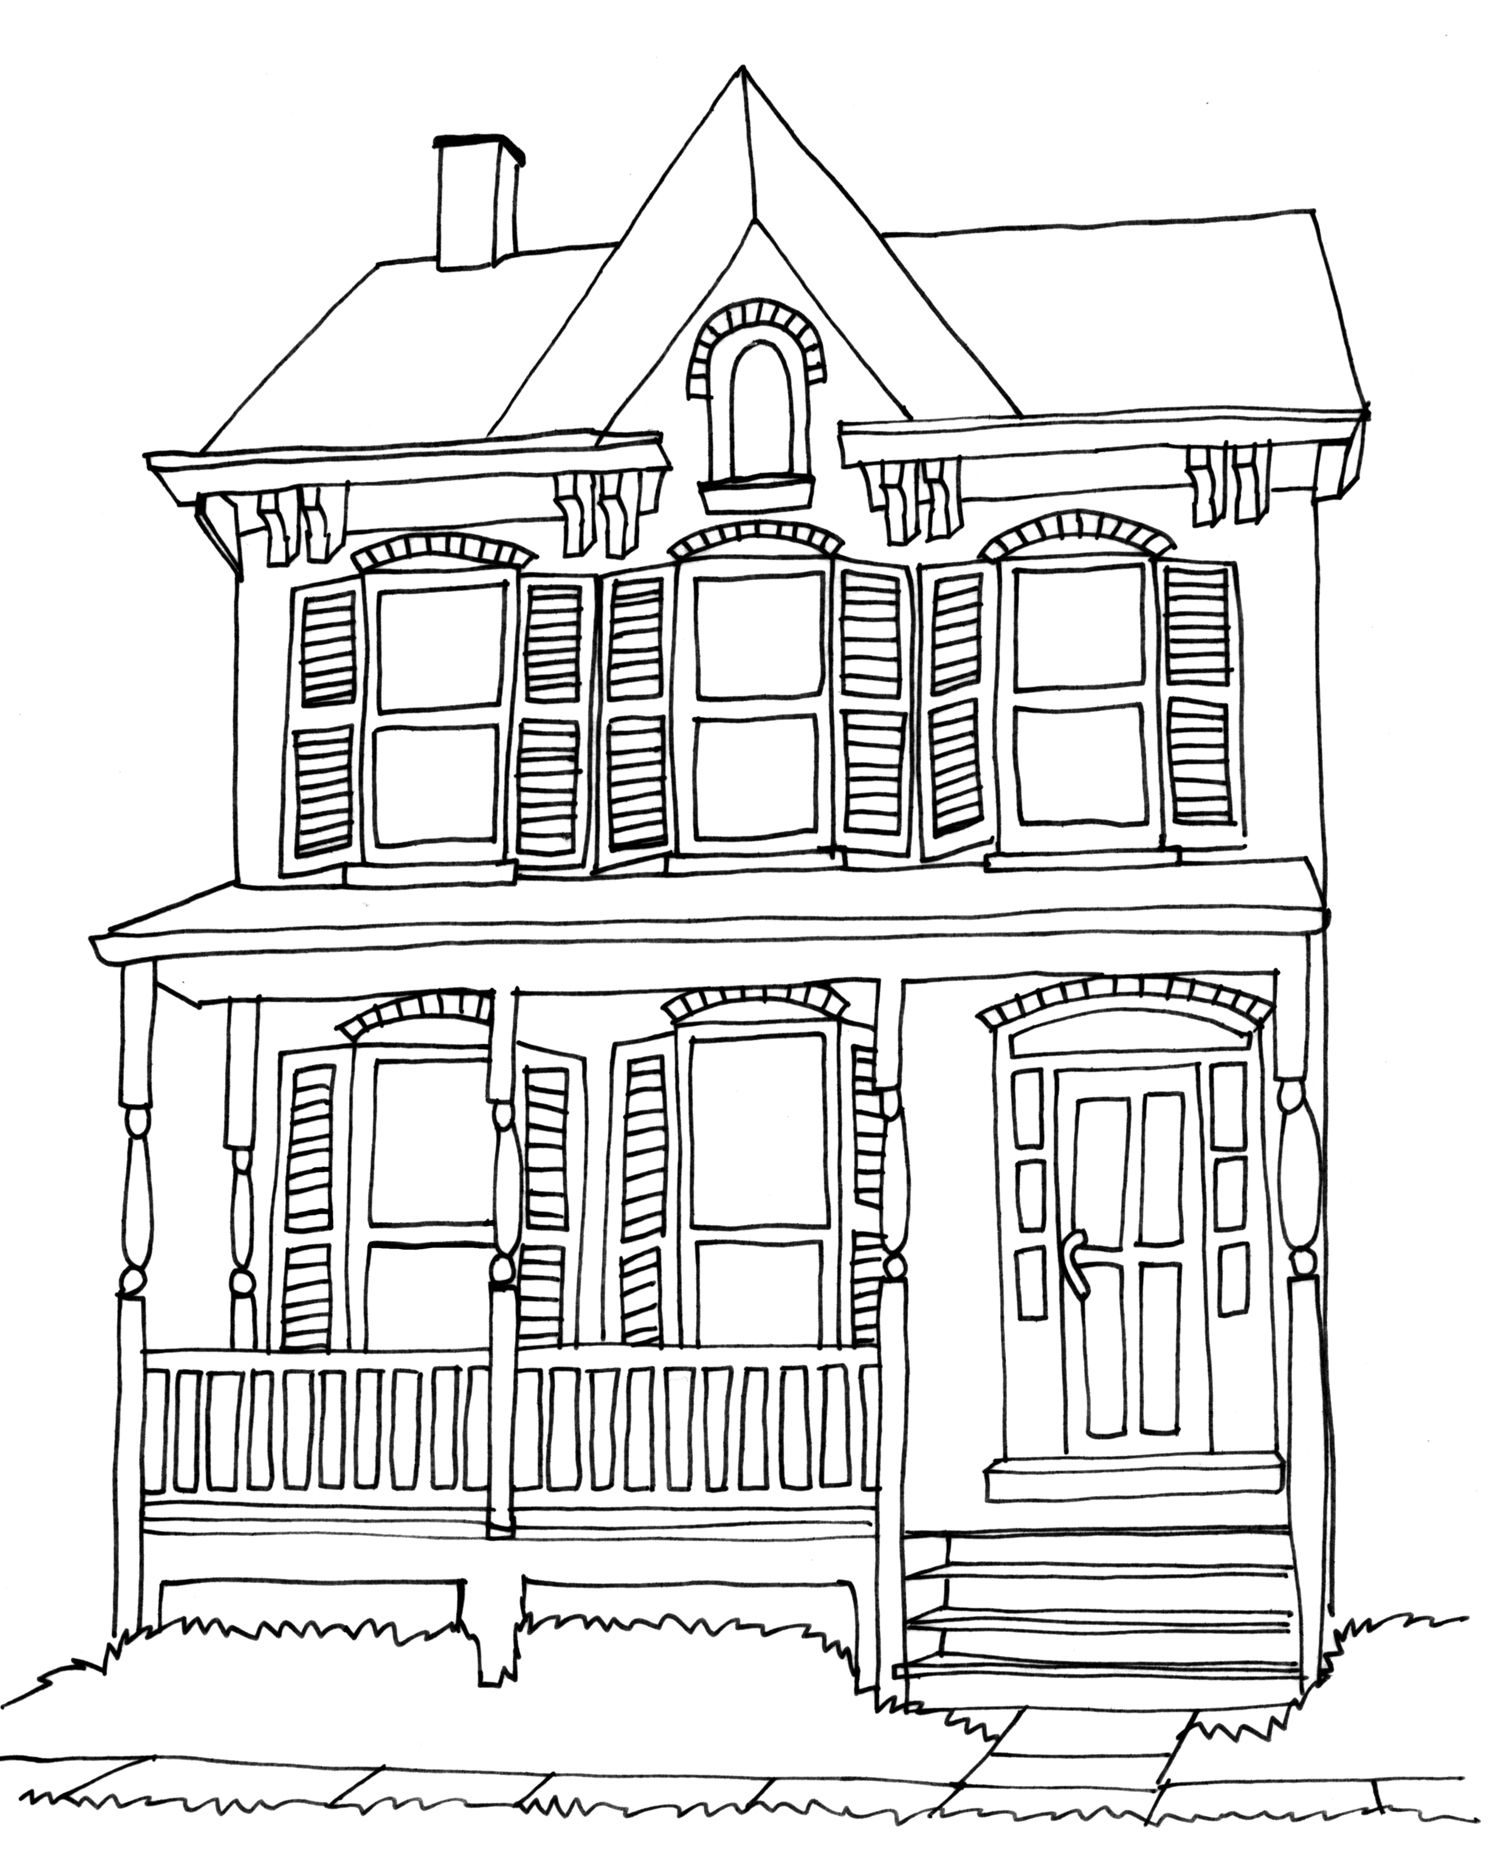 Bing Images Search Q: Https://www.bing.com/images/search?q=house Drawings